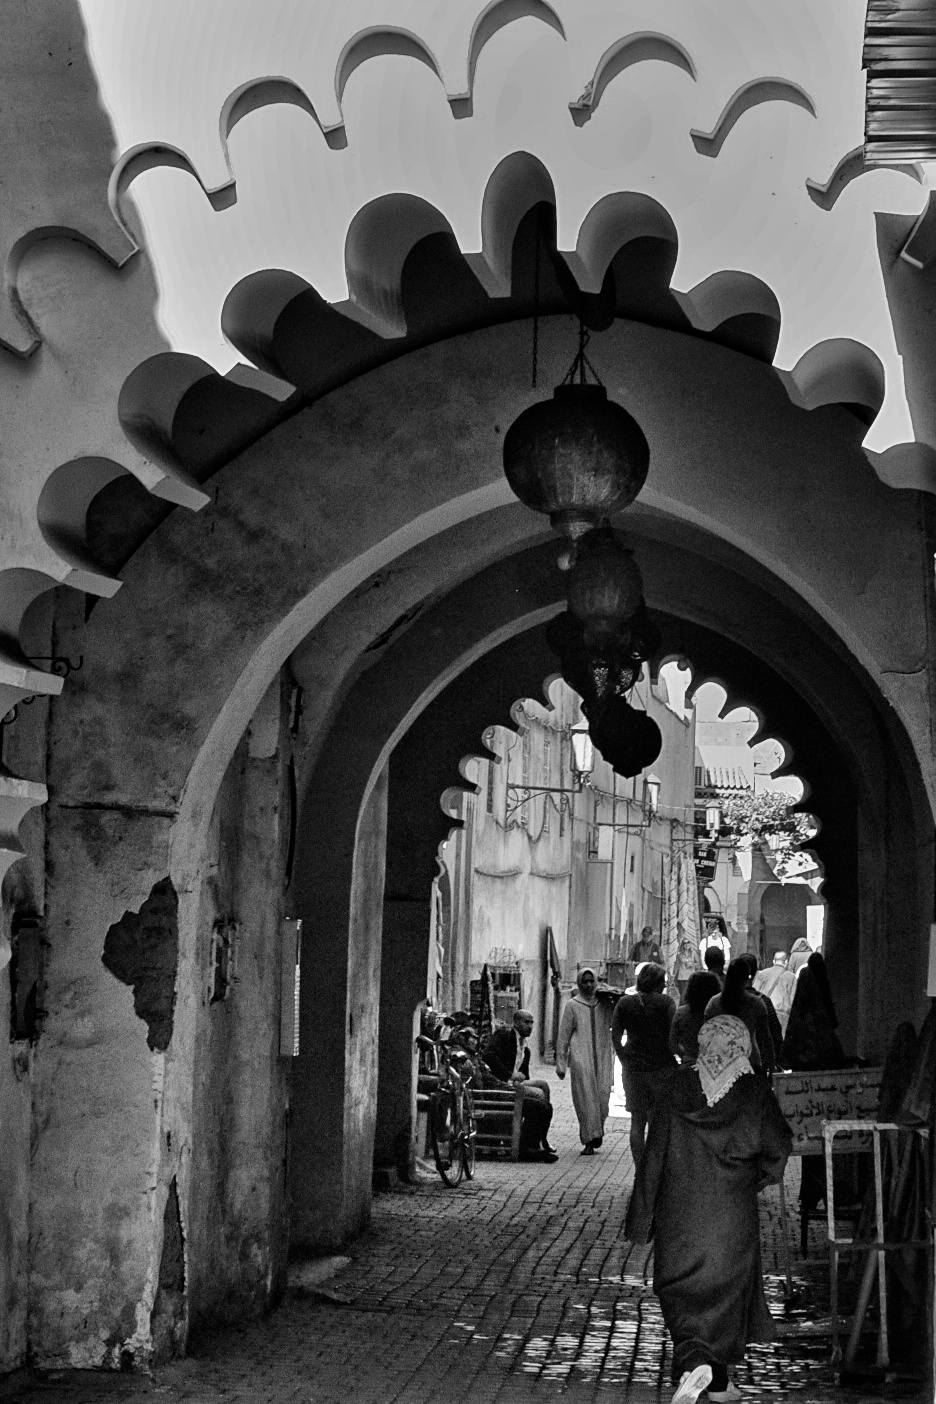 Ancient arches and alleyway in Fez, Morocco